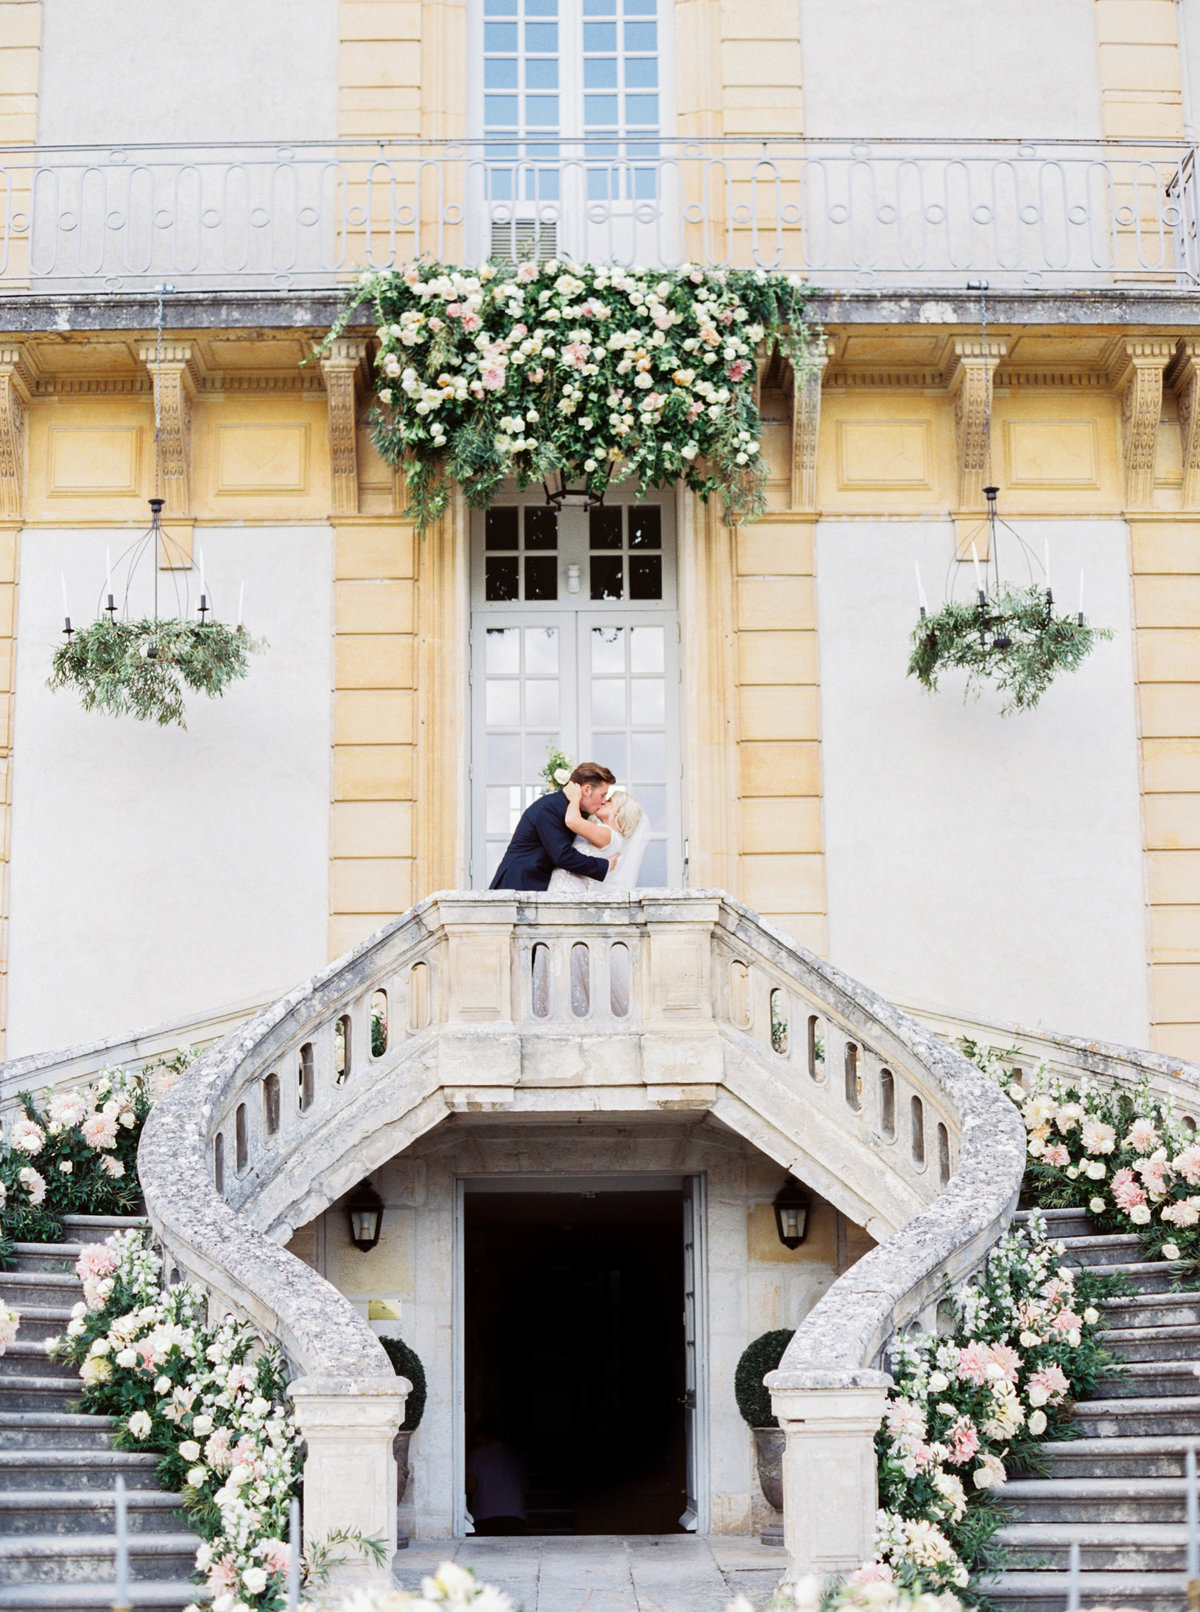 Paris France Wedding - Mary Claire Photography-62